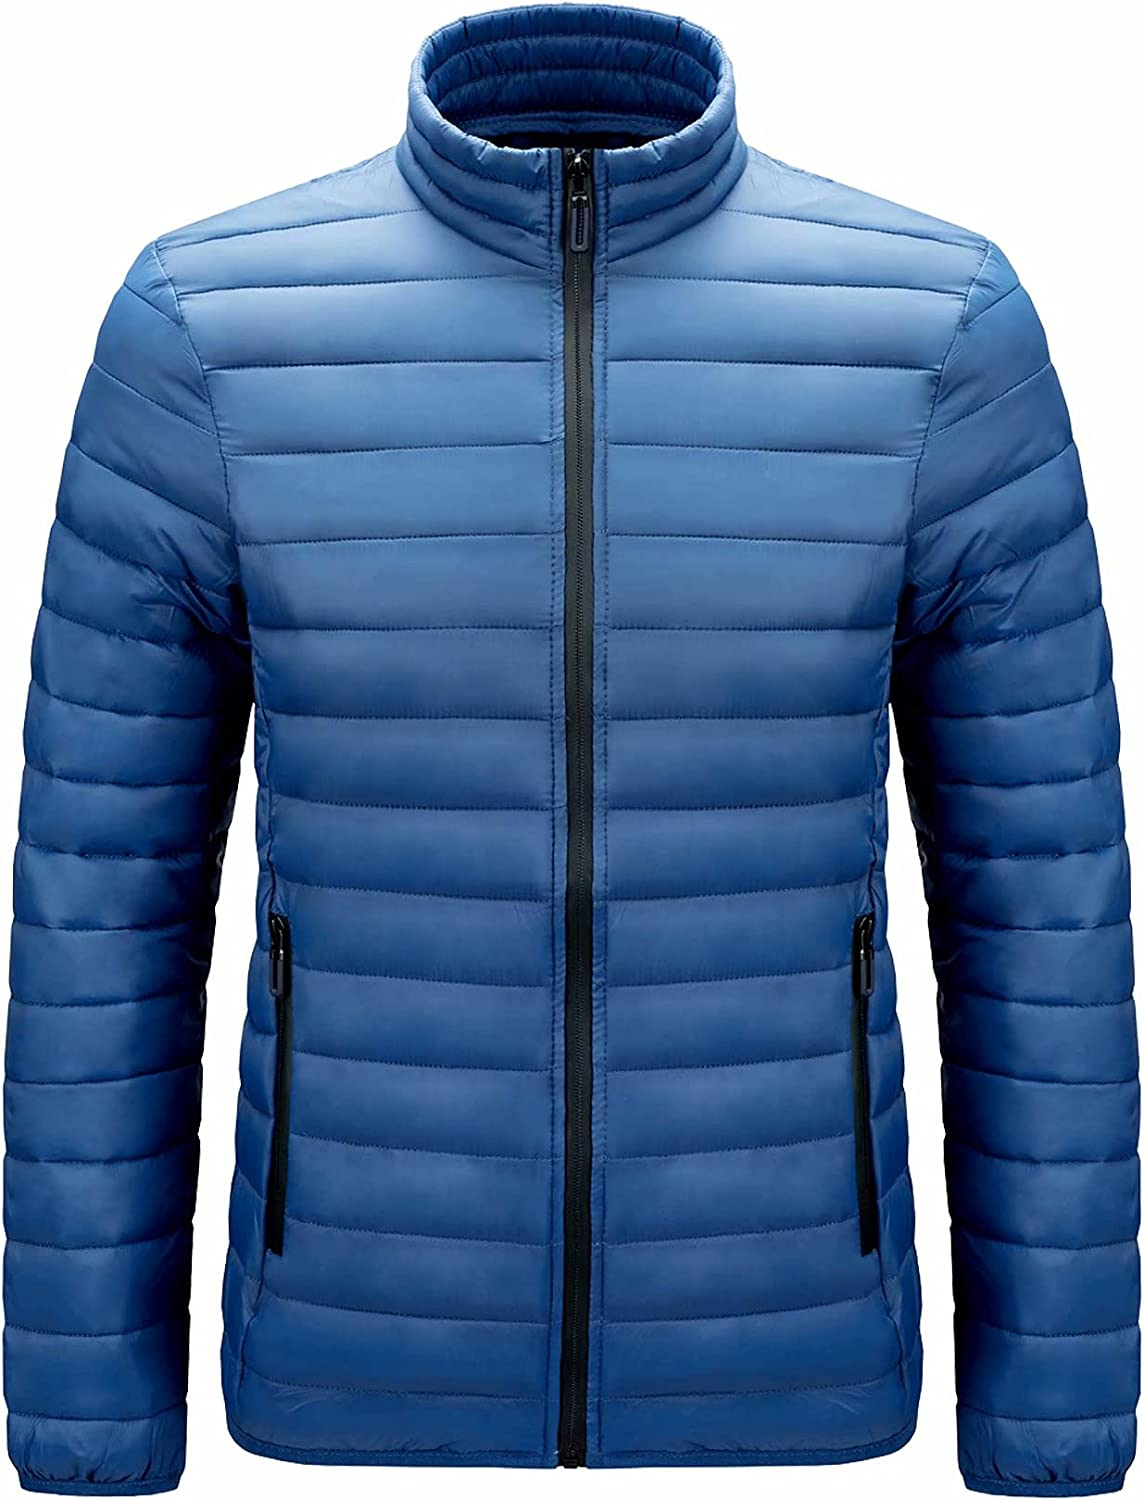 winter jackets for men Directly managed store 5 ☆ popular Very spring jacket suitable